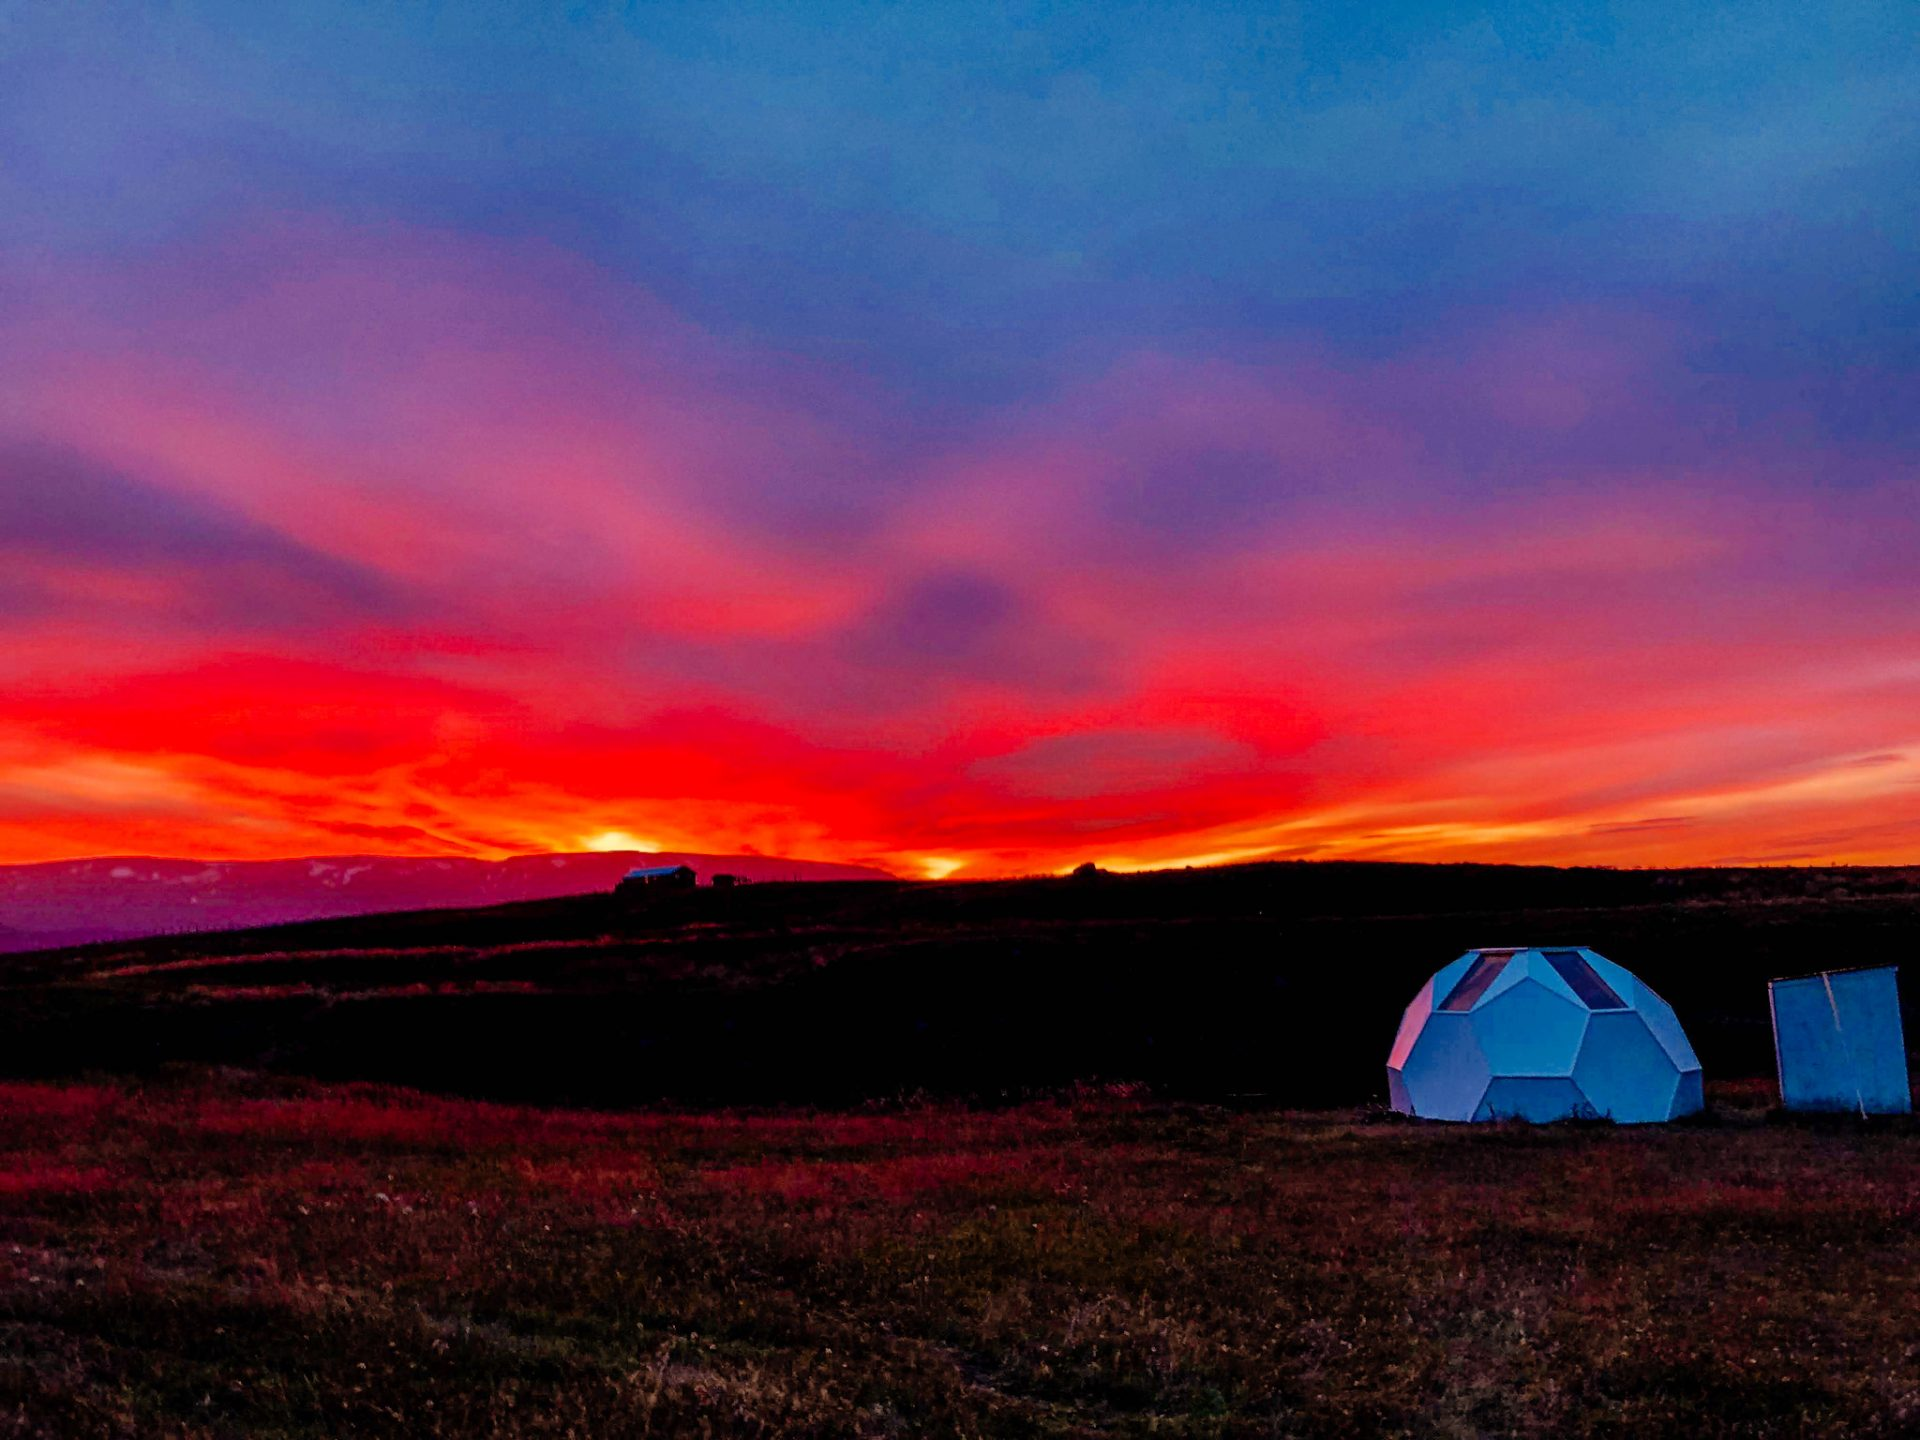 A pink and purple sunrise fire sky overlooking a small white igloo camping structure. Top Experience to have while in Iceland.